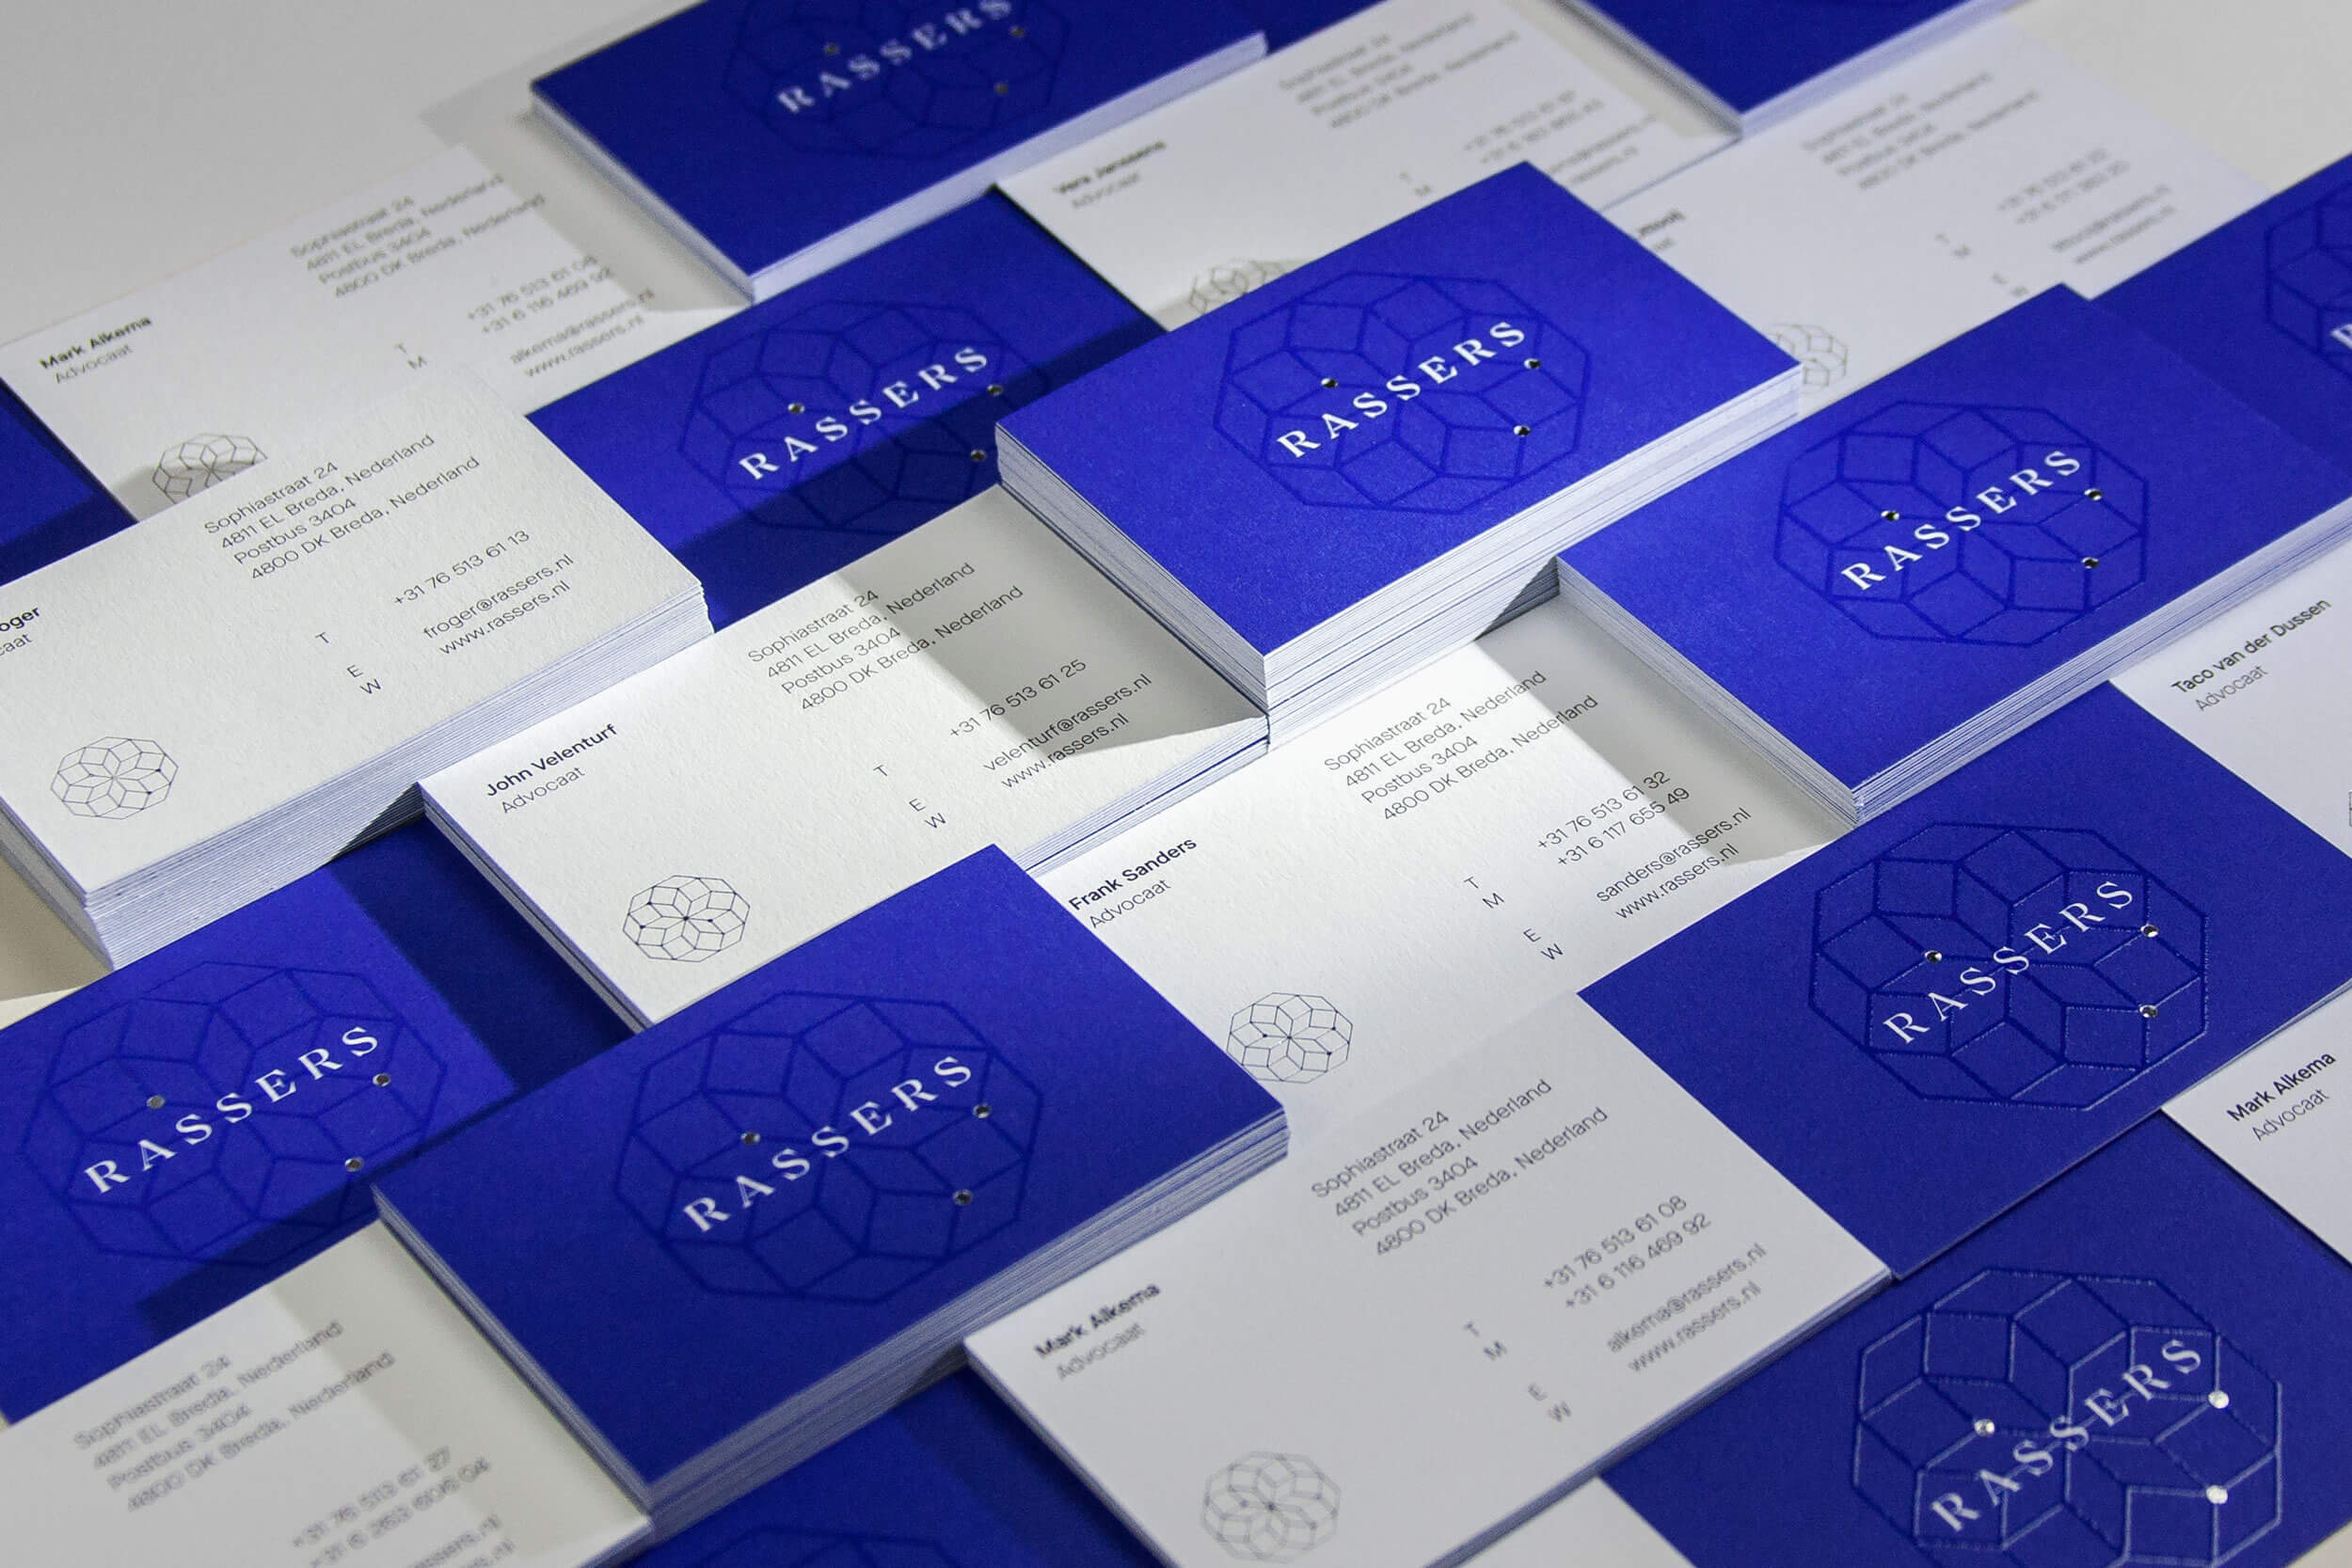 A couple stacks of Rassers business cards design